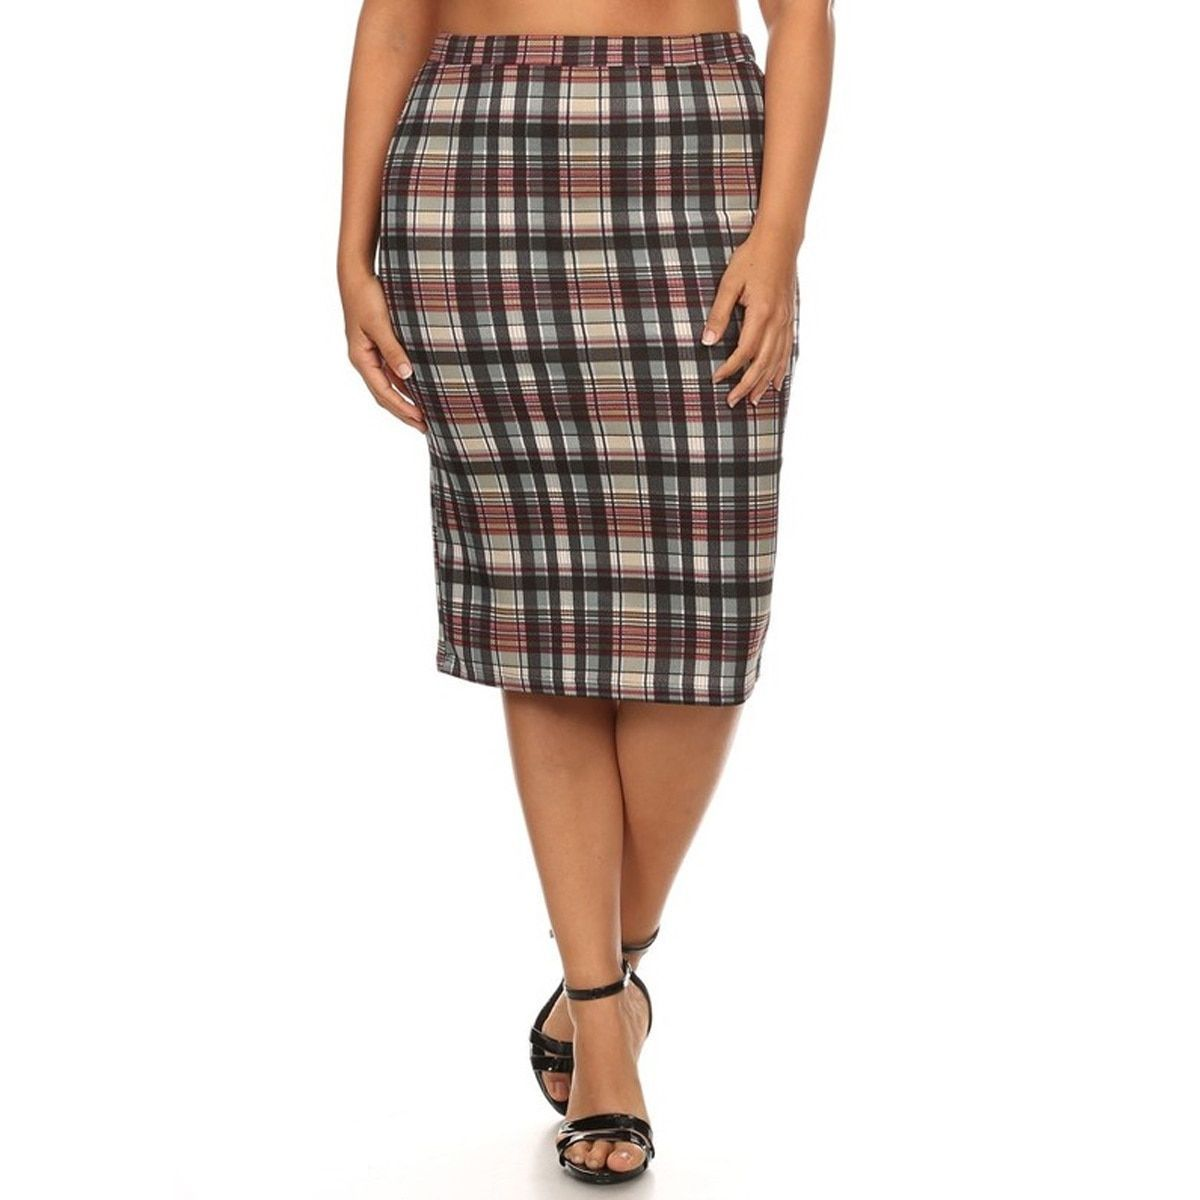 52bab3c5c8d6 Plus Size Plaid Pencil Skirt | Saddha